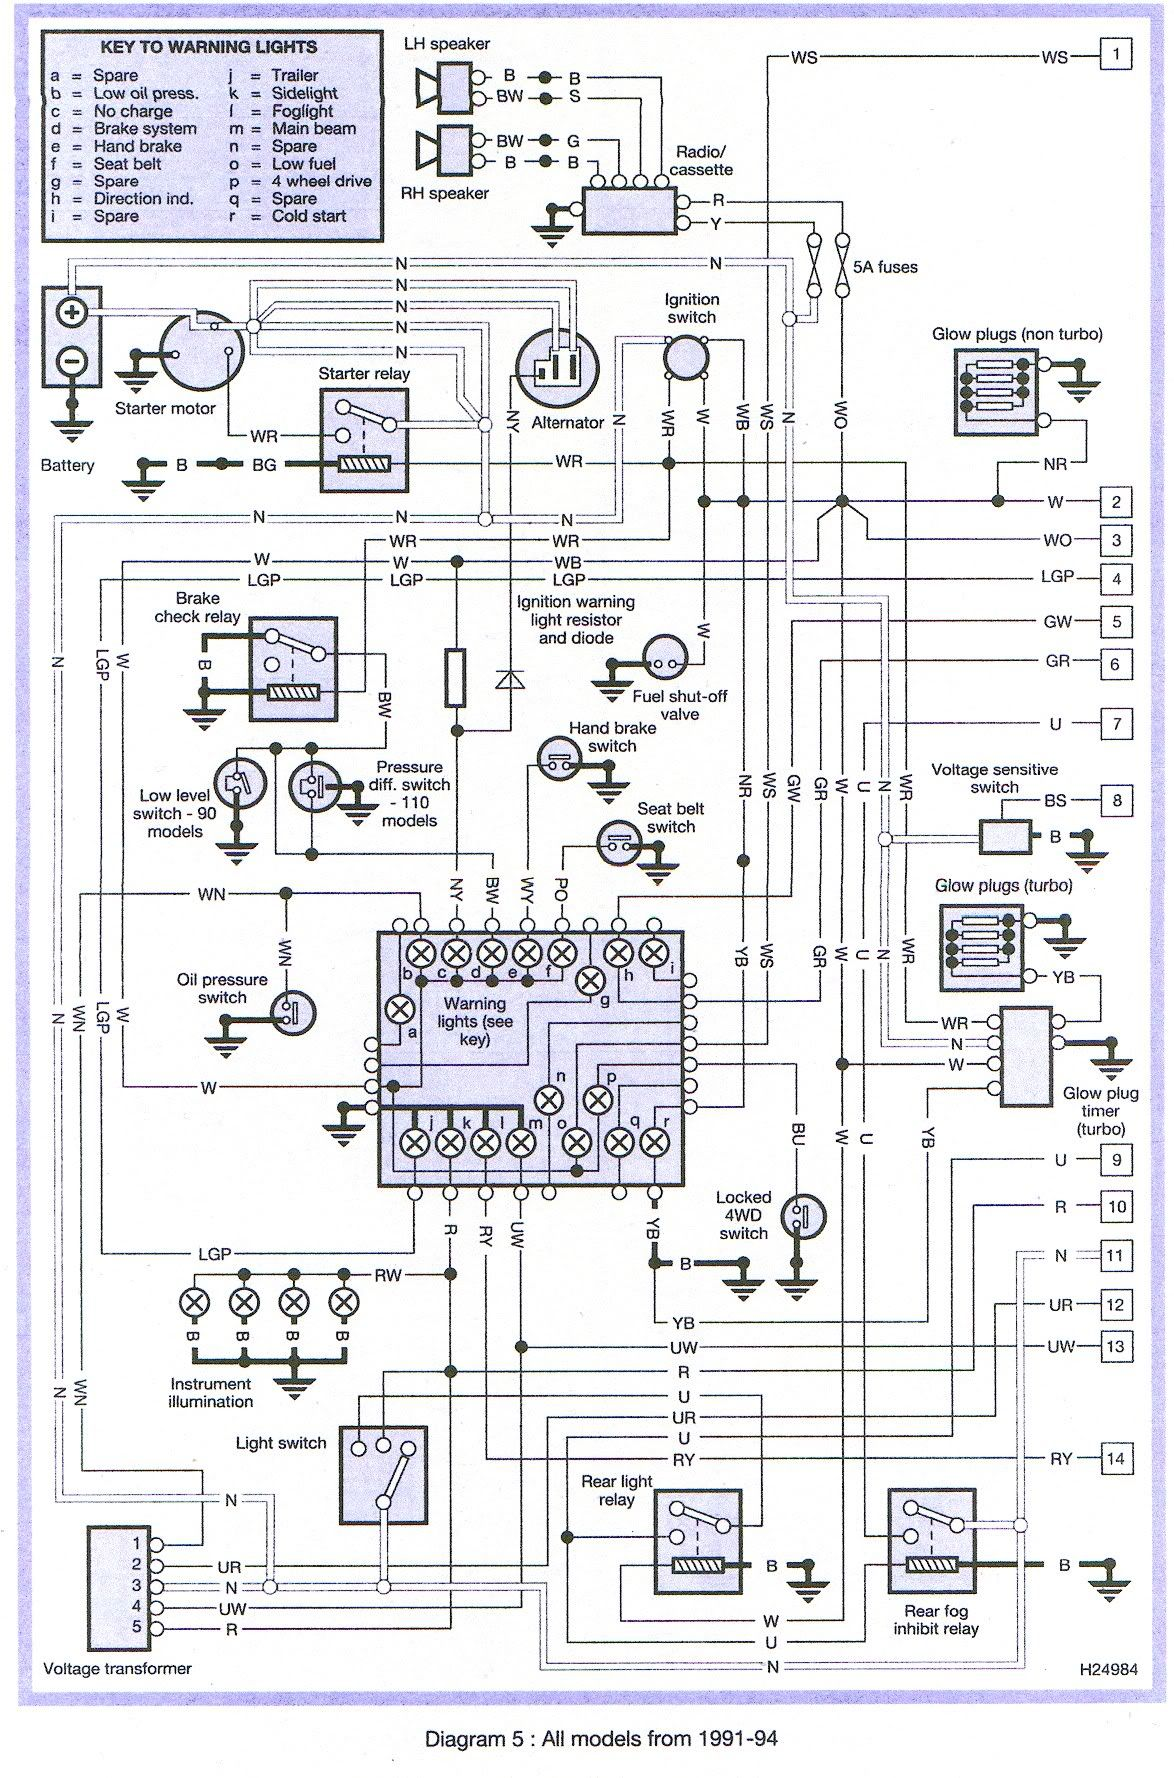 land rover discovery wiring diagram manual repair with engine rh pinterest com land rover discovery 3 wiring diagram land rover discovery 3 wiring diagram